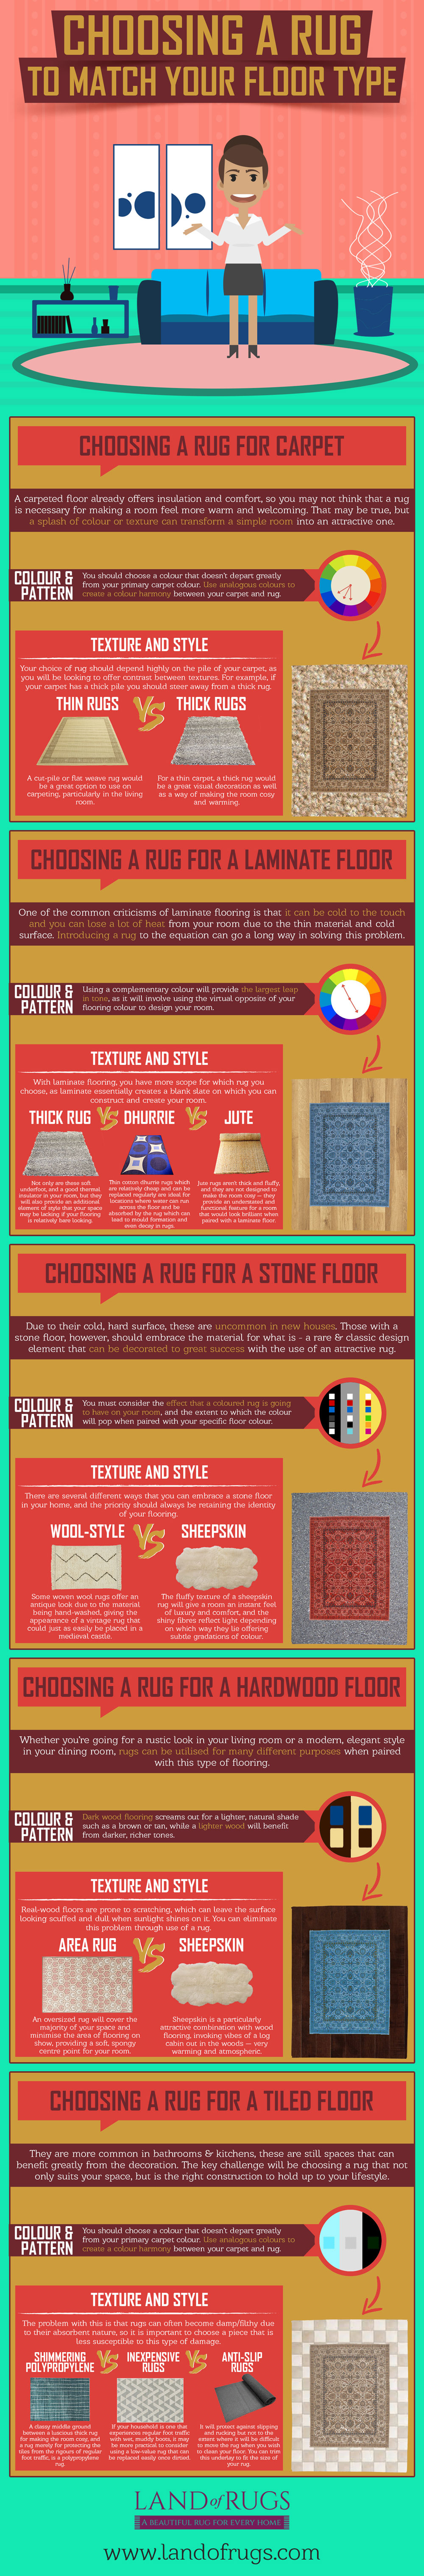 How to Choose a Rug That Matches Your Floor Type A Mum Reviews